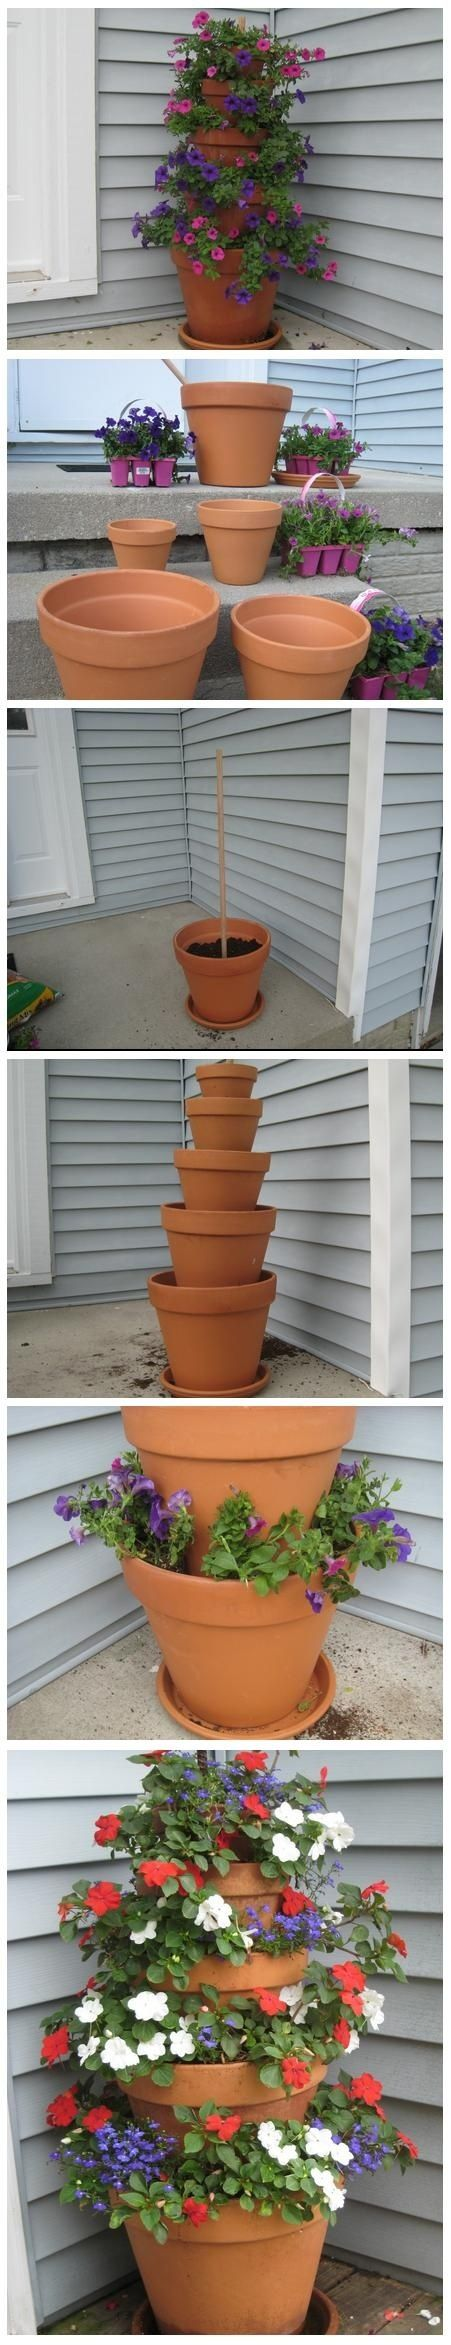 Terra Cotta Pot Flower Tower with Annuals @ Pin Your Home, I like this...